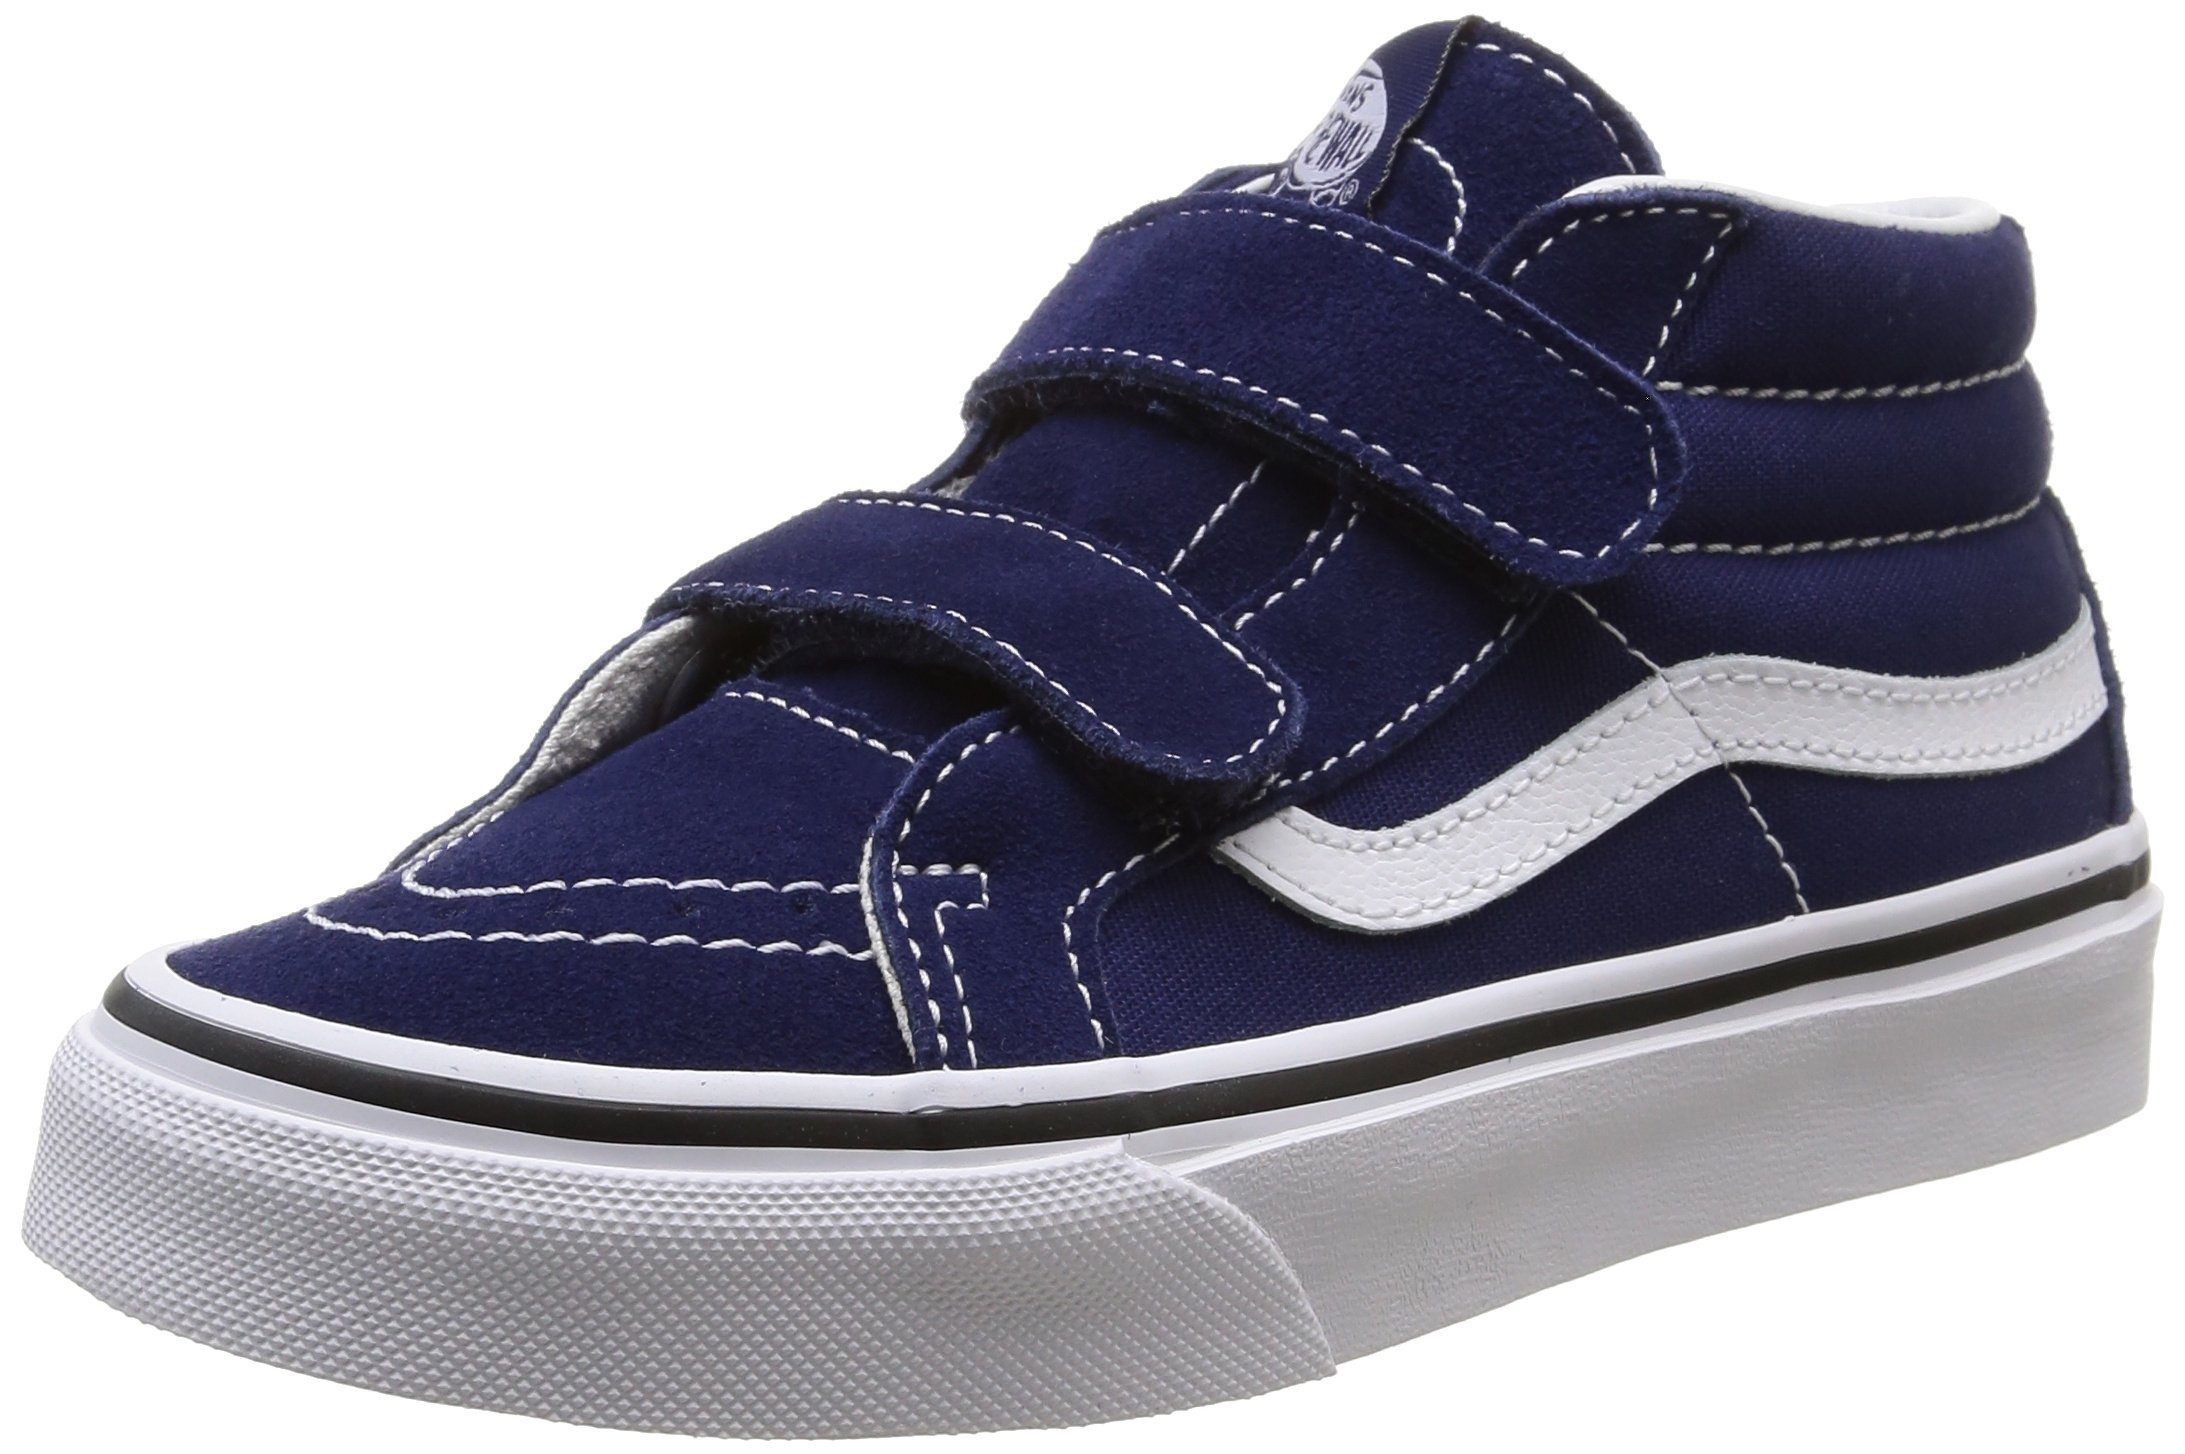 Do Vans Skate Shoes Run True To Size